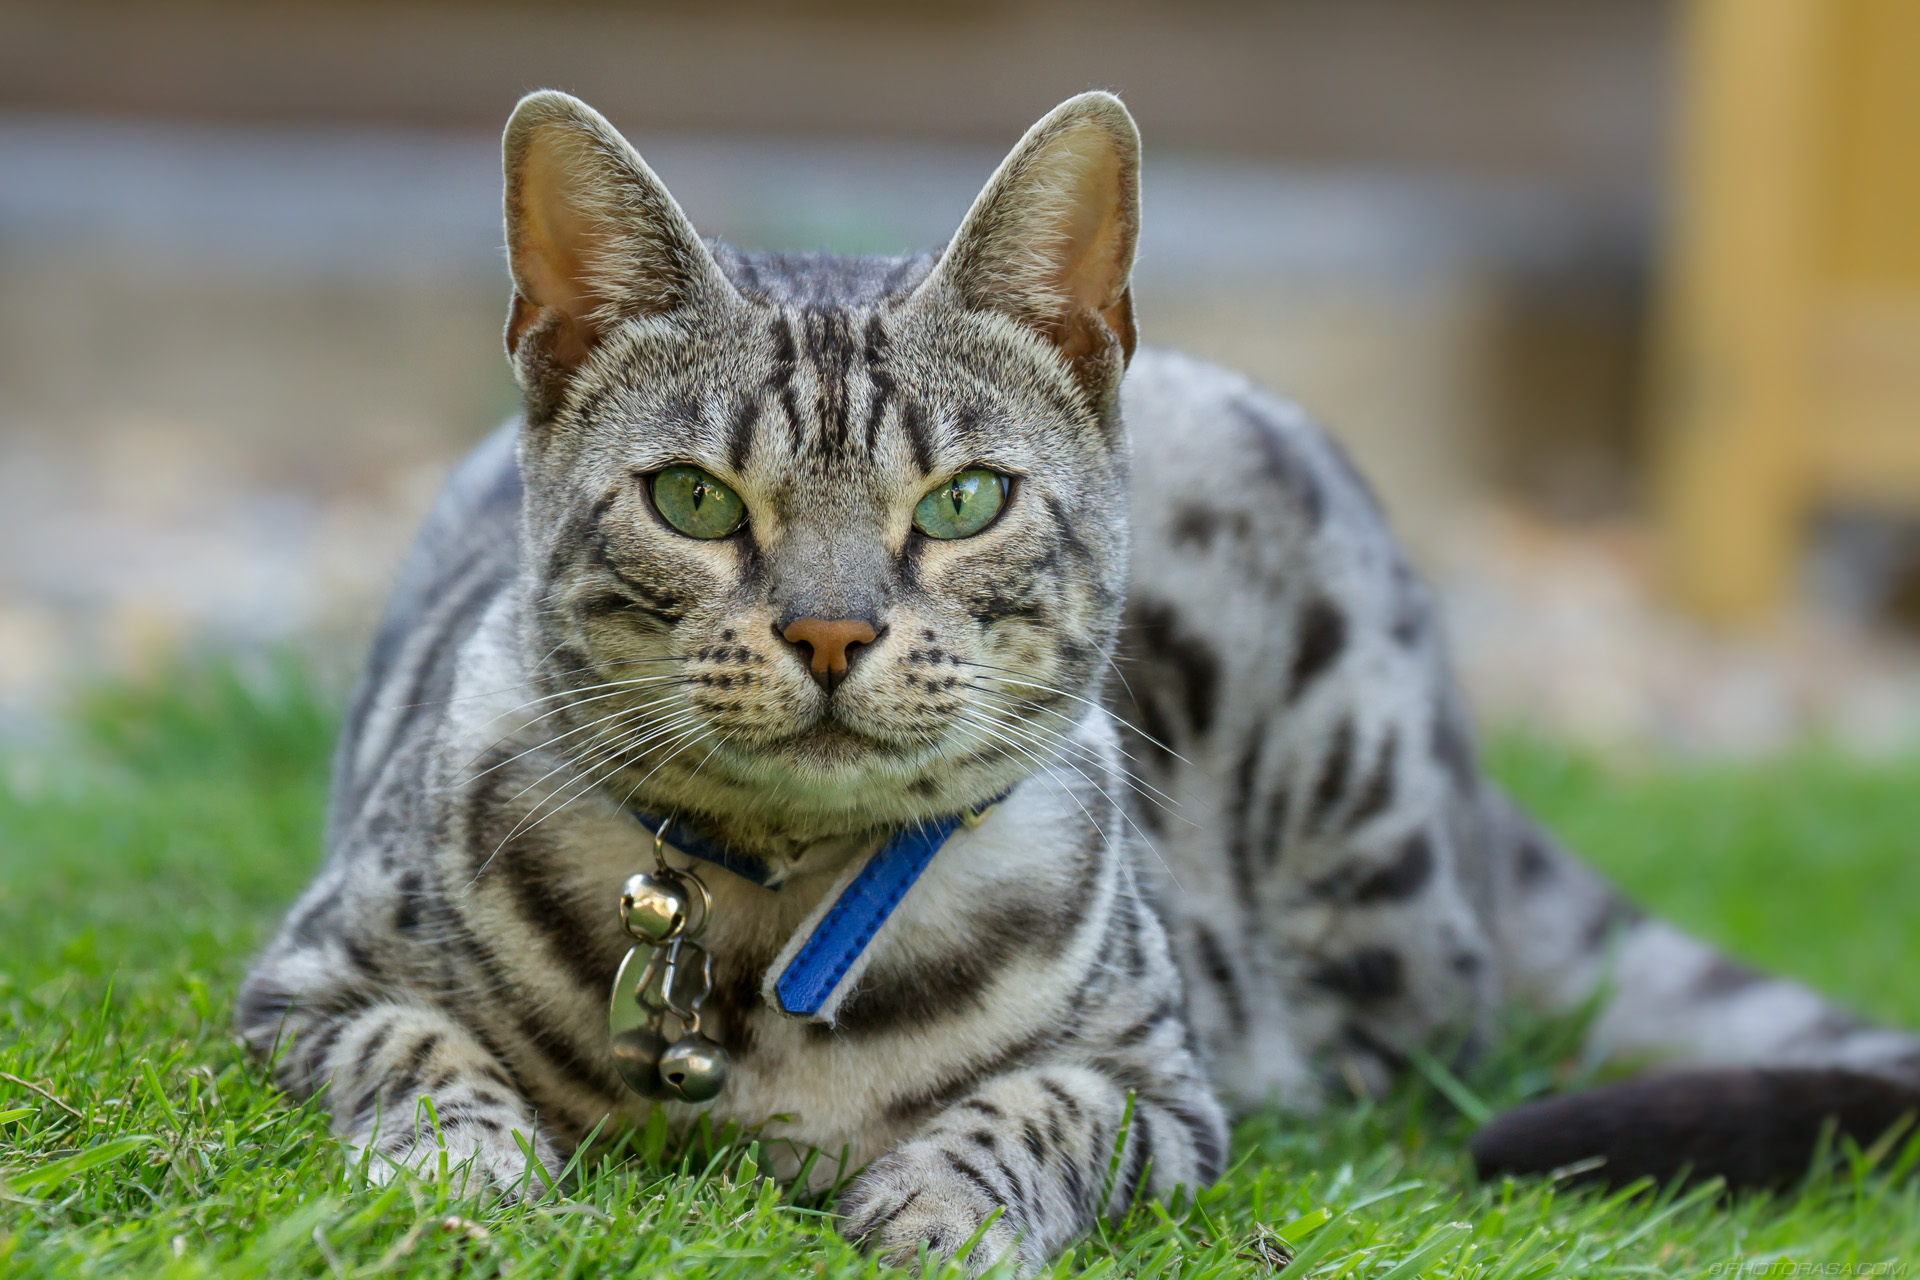 http://photorasa.com/silver-tabby-cat/a-soft-friendly-look-towards-the-camera/